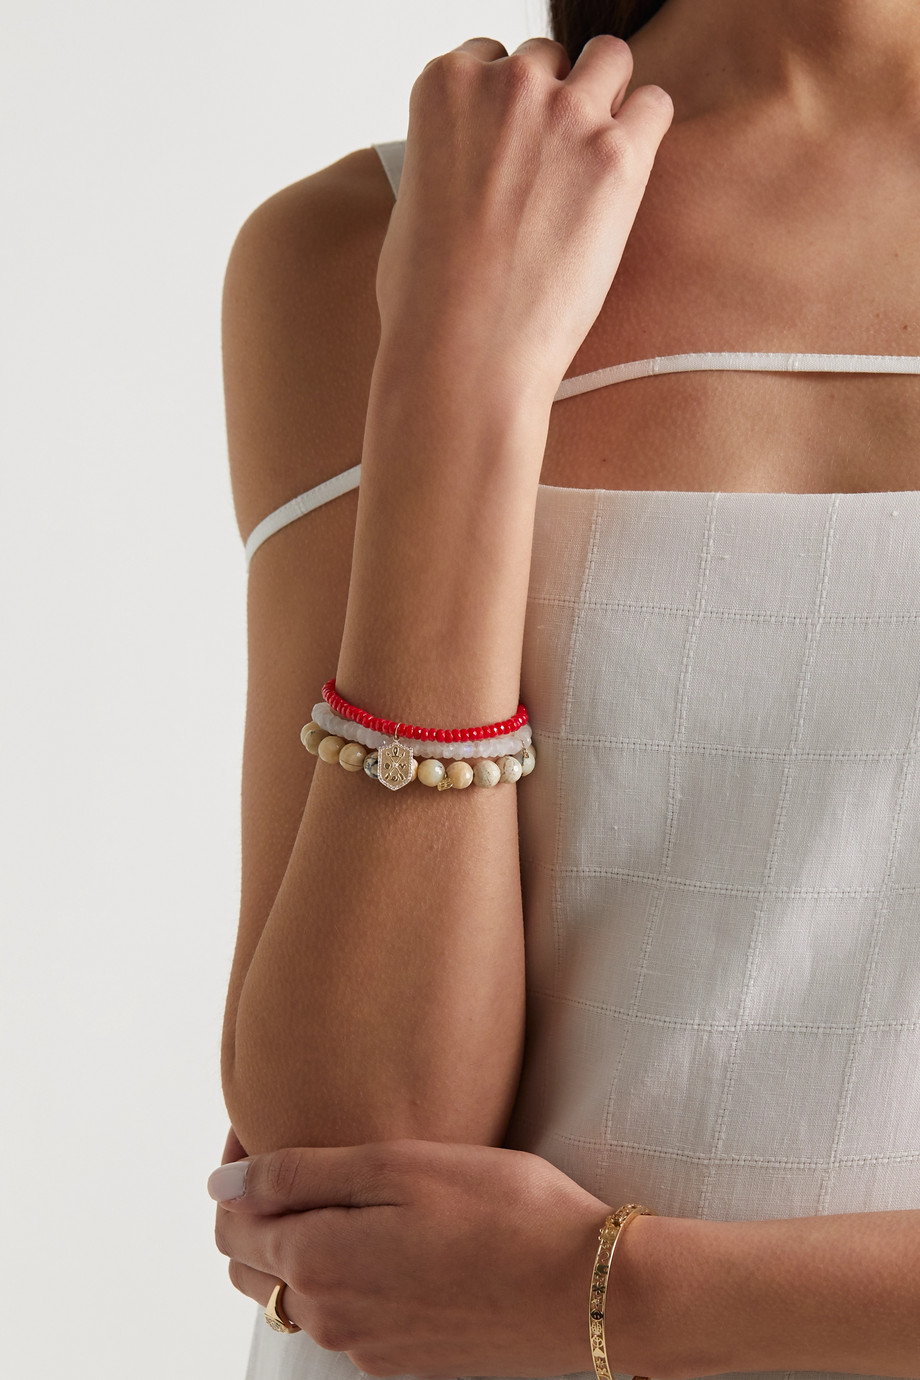 Sydney Evan Bracelet en or 14 carats, corail et diamants Small Love